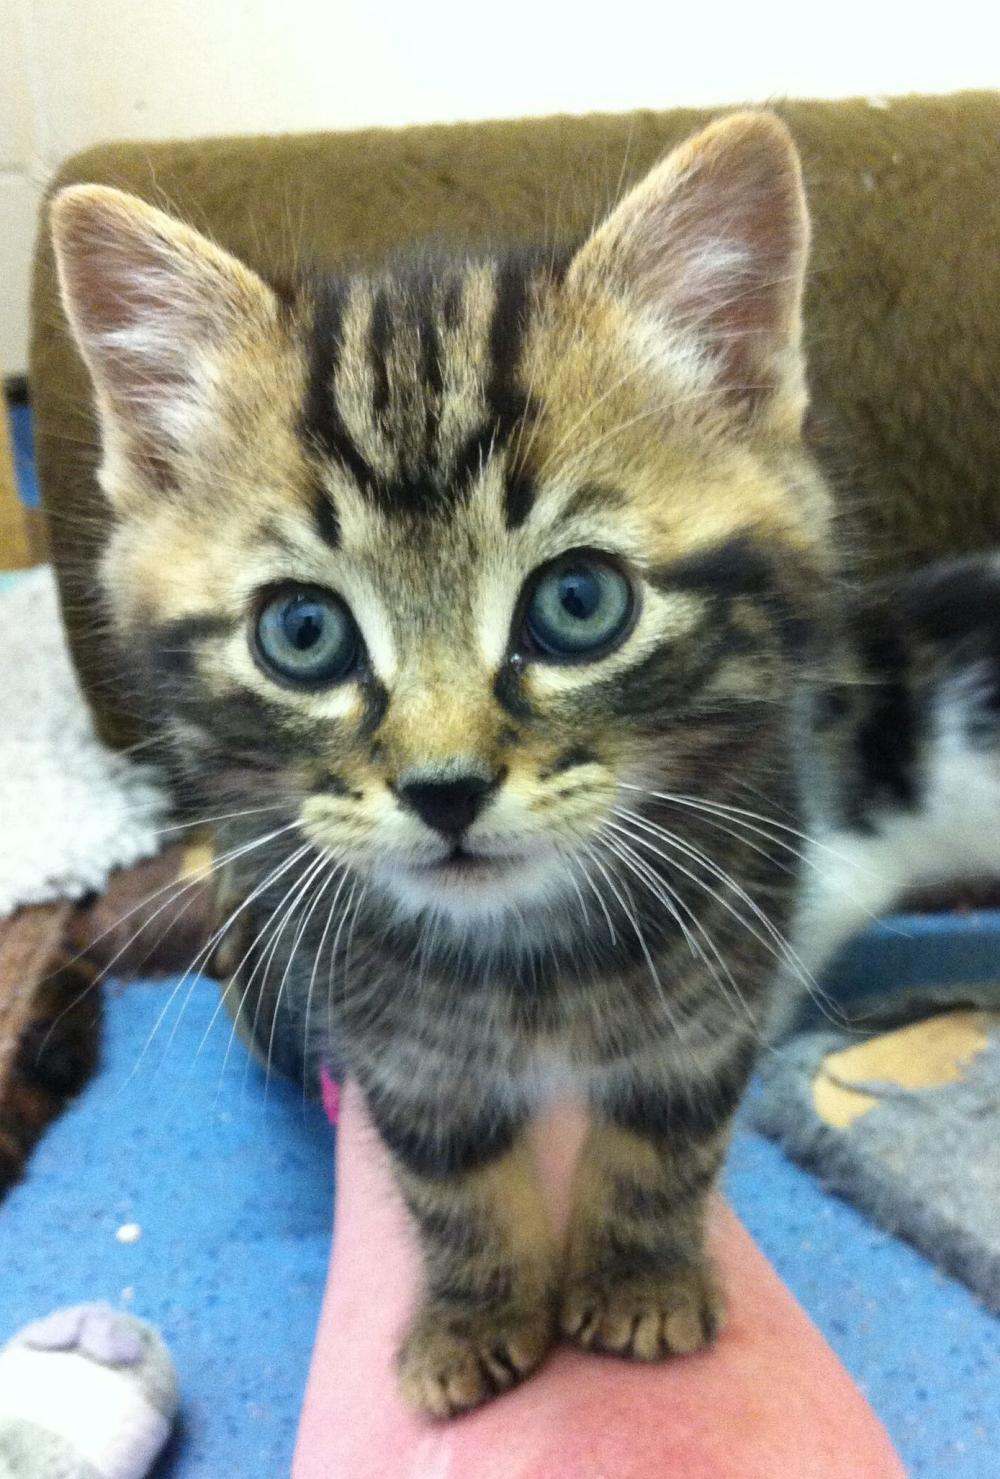 Kitten Lewis is hoping he'll be zooming off to a new home soon